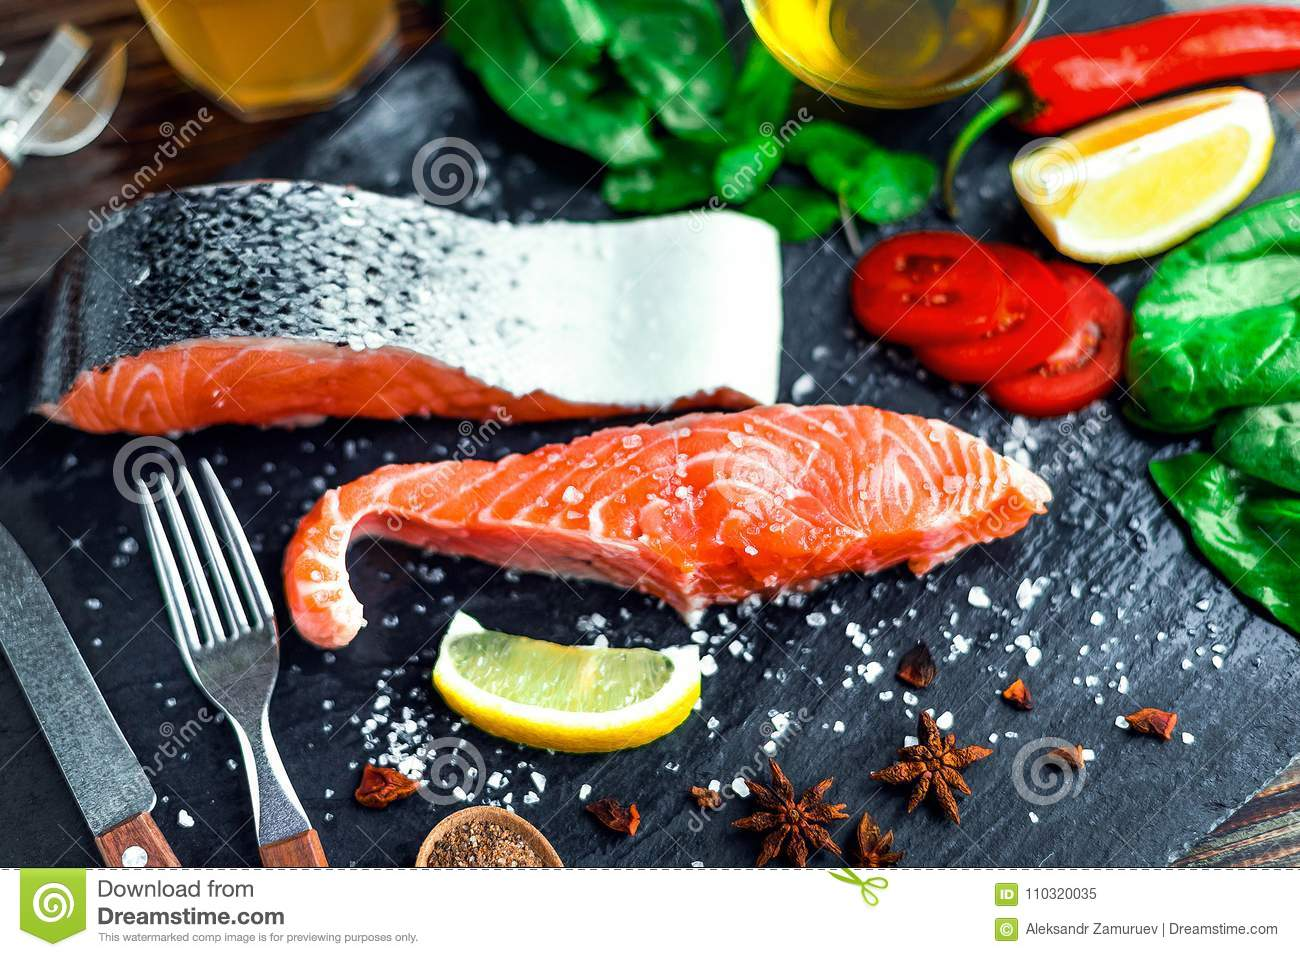 Raw Salmon Fillet And Ingredients For Cooking On A Dark Background